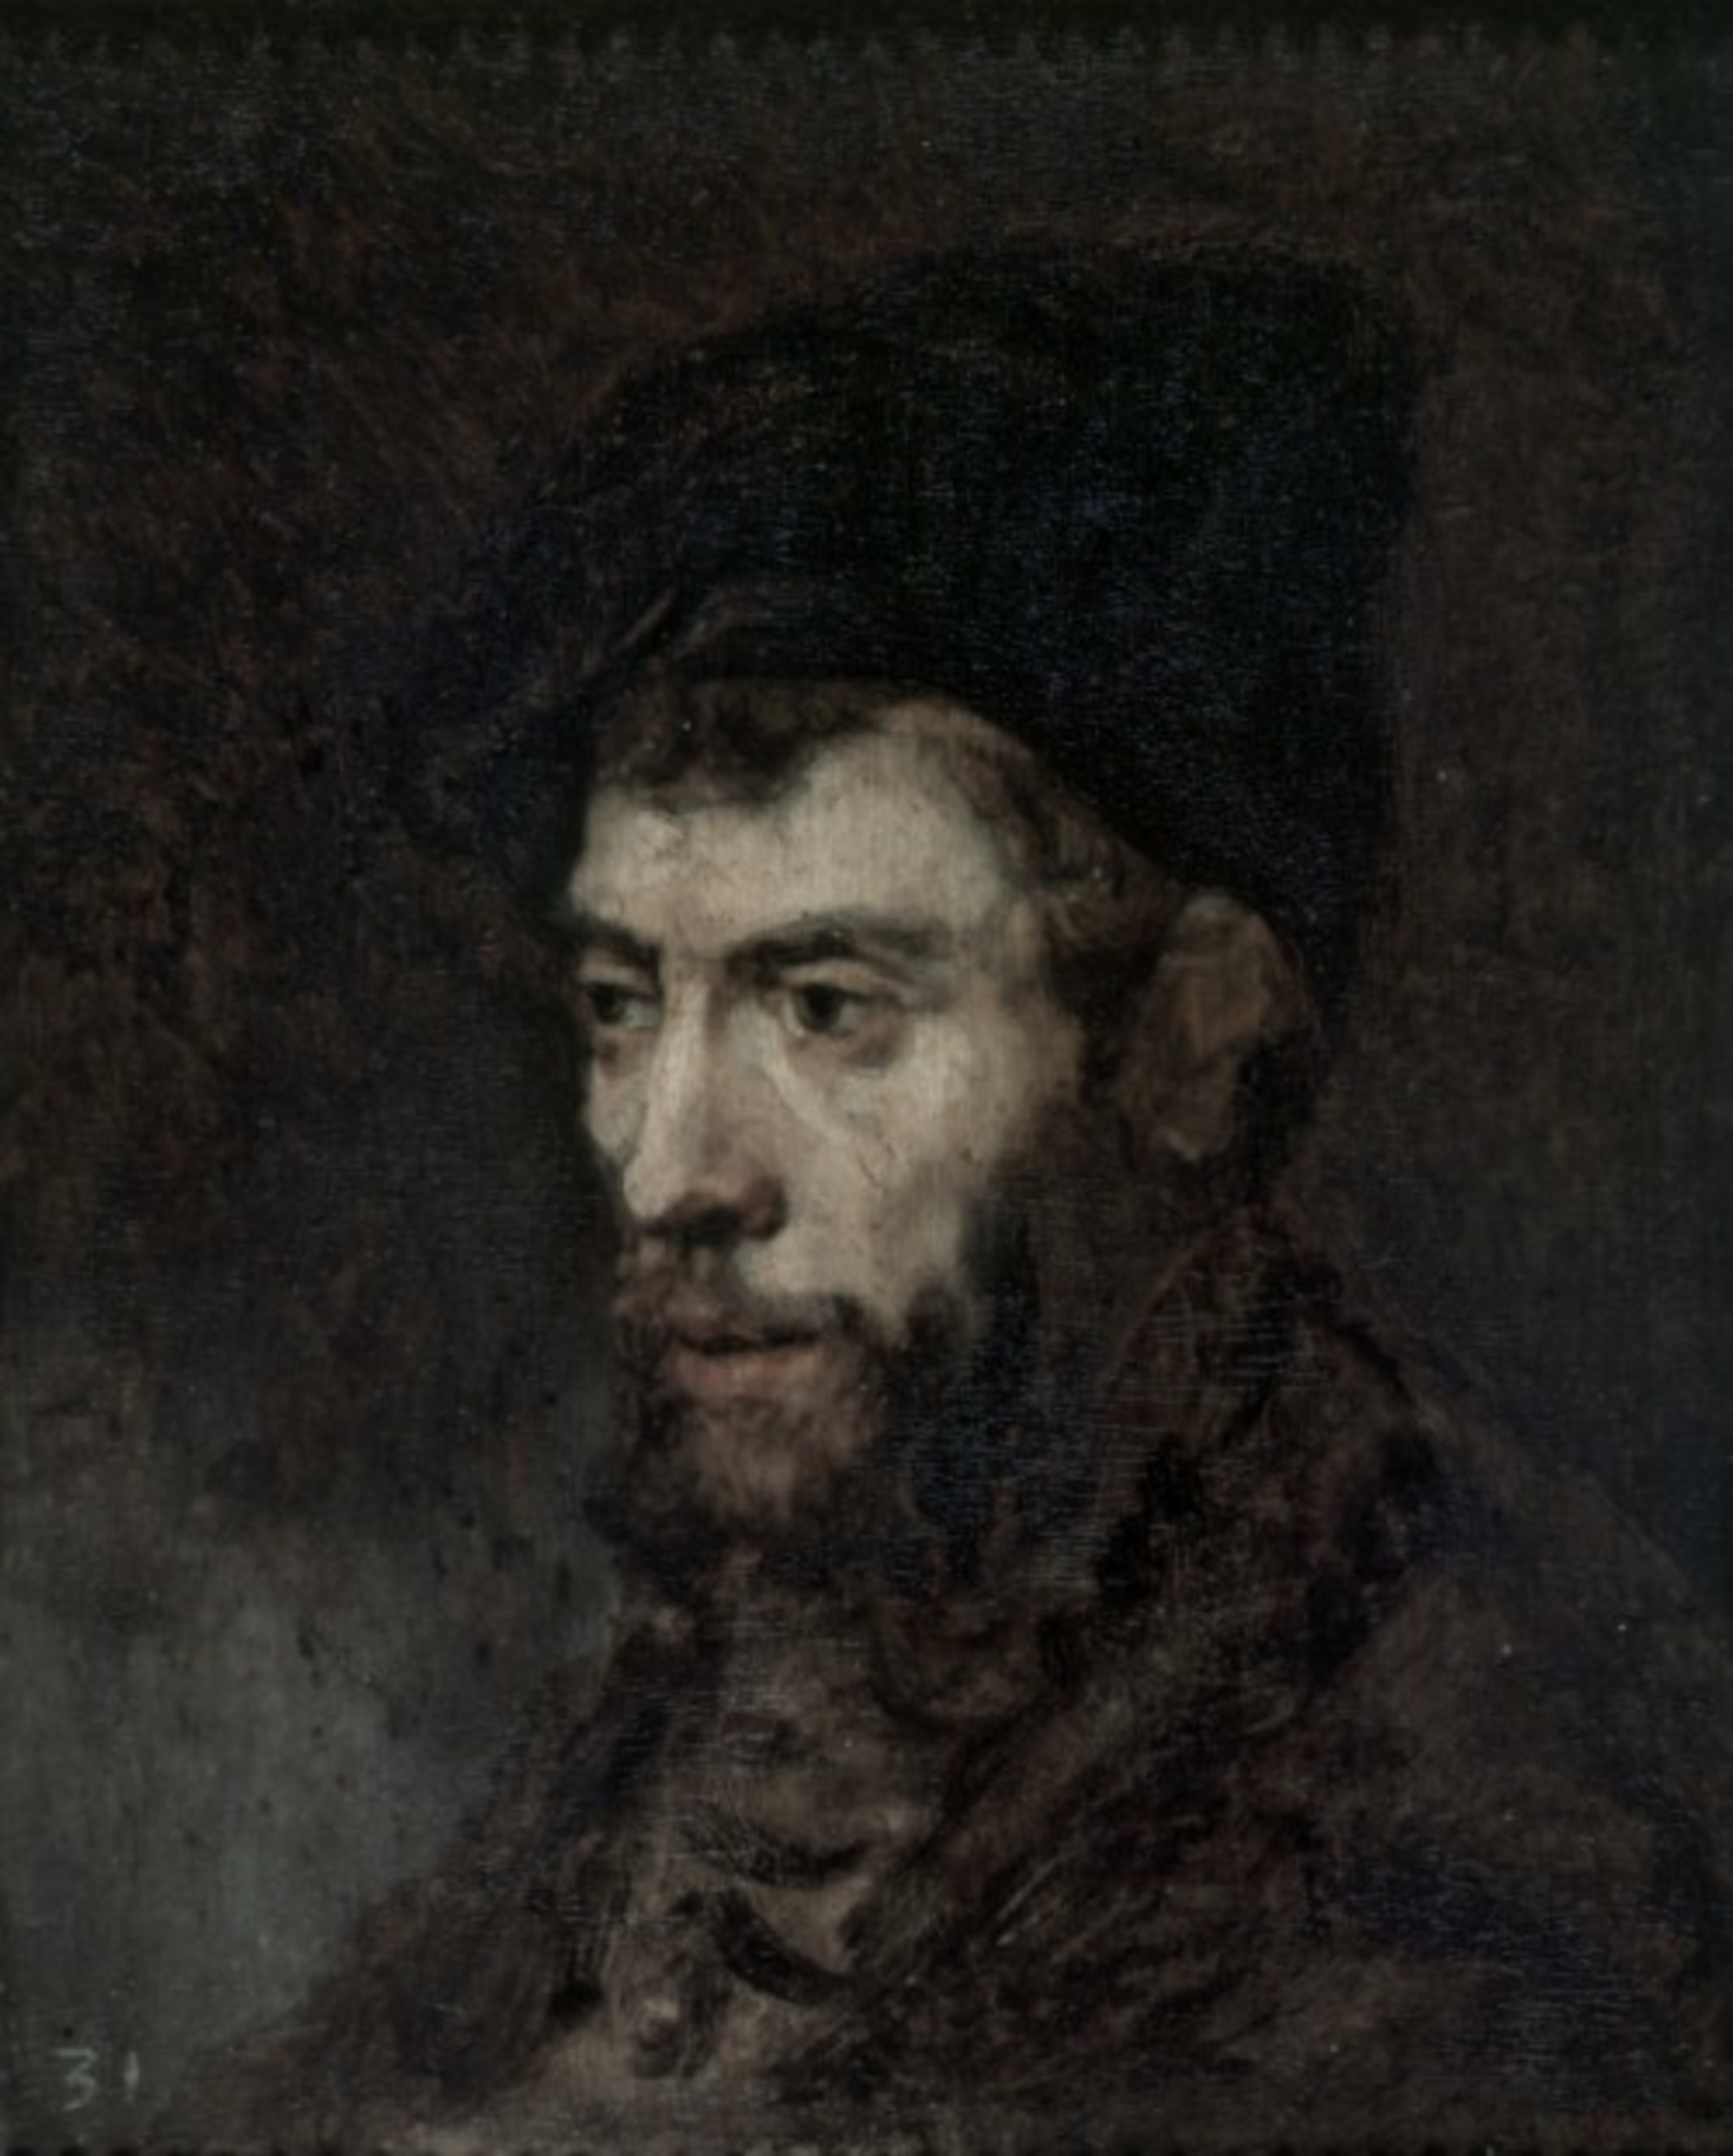 Rembrandt Portrait of a Man (Scotland)